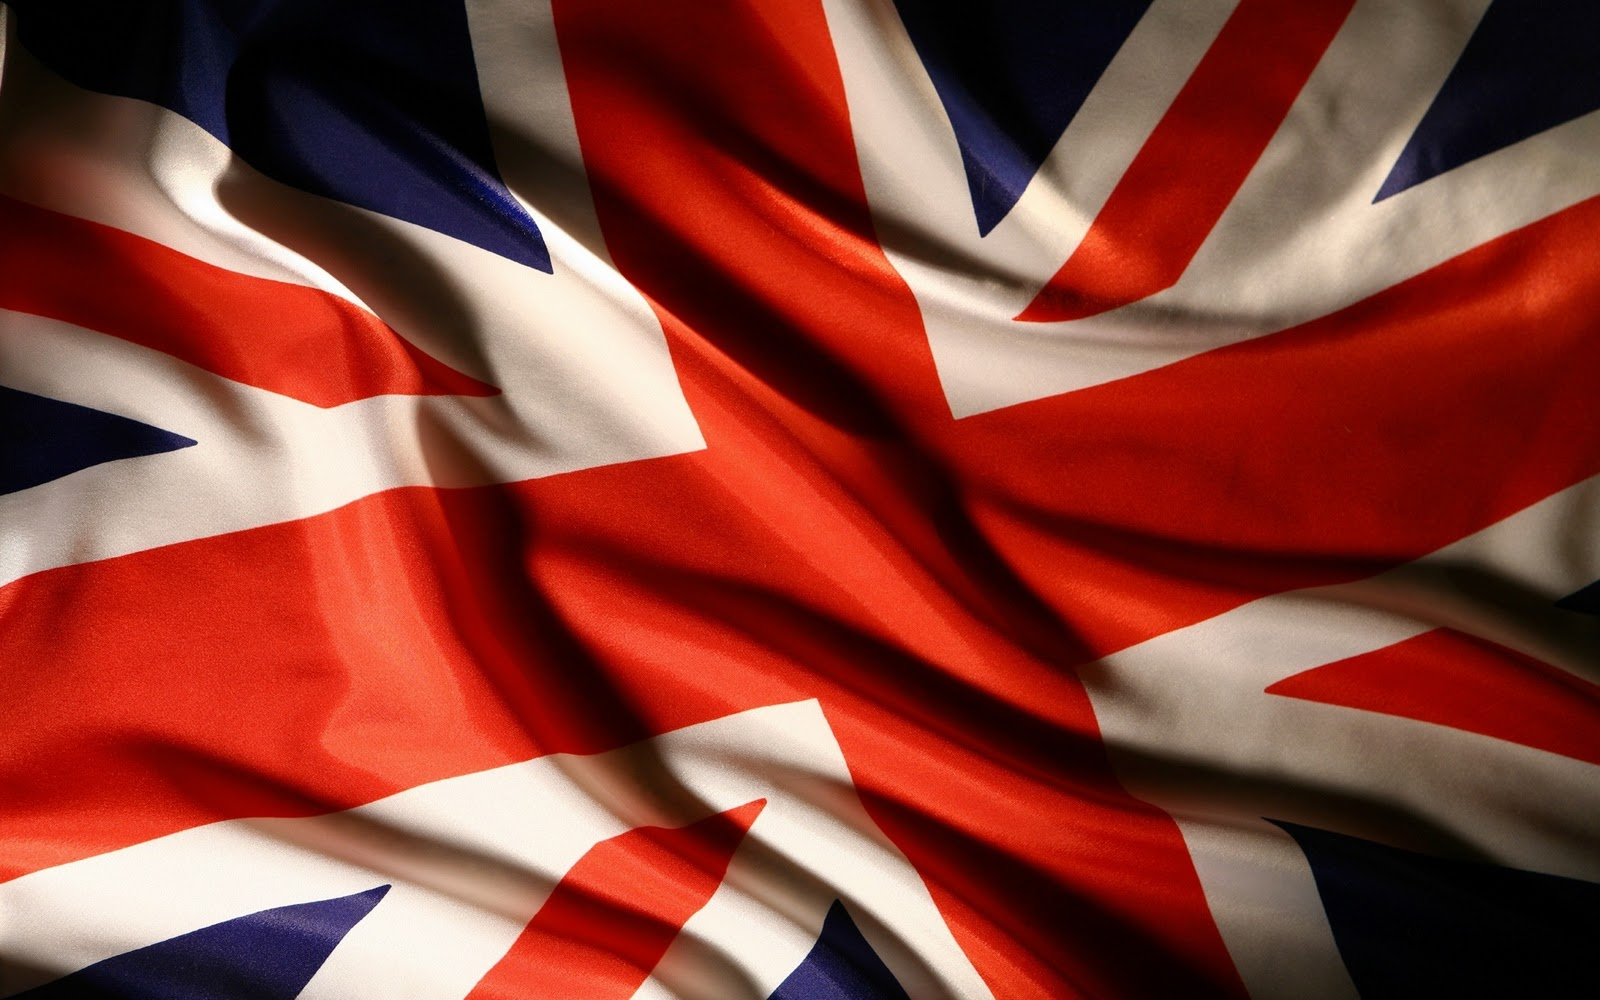 http://2.bp.blogspot.com/-hee_r5XagUQ/Tv89QCXvZTI/AAAAAAAAAcU/BvmQTFjTARo/s1600/british-flag-wallpapers_23668_1920x1200.jpg